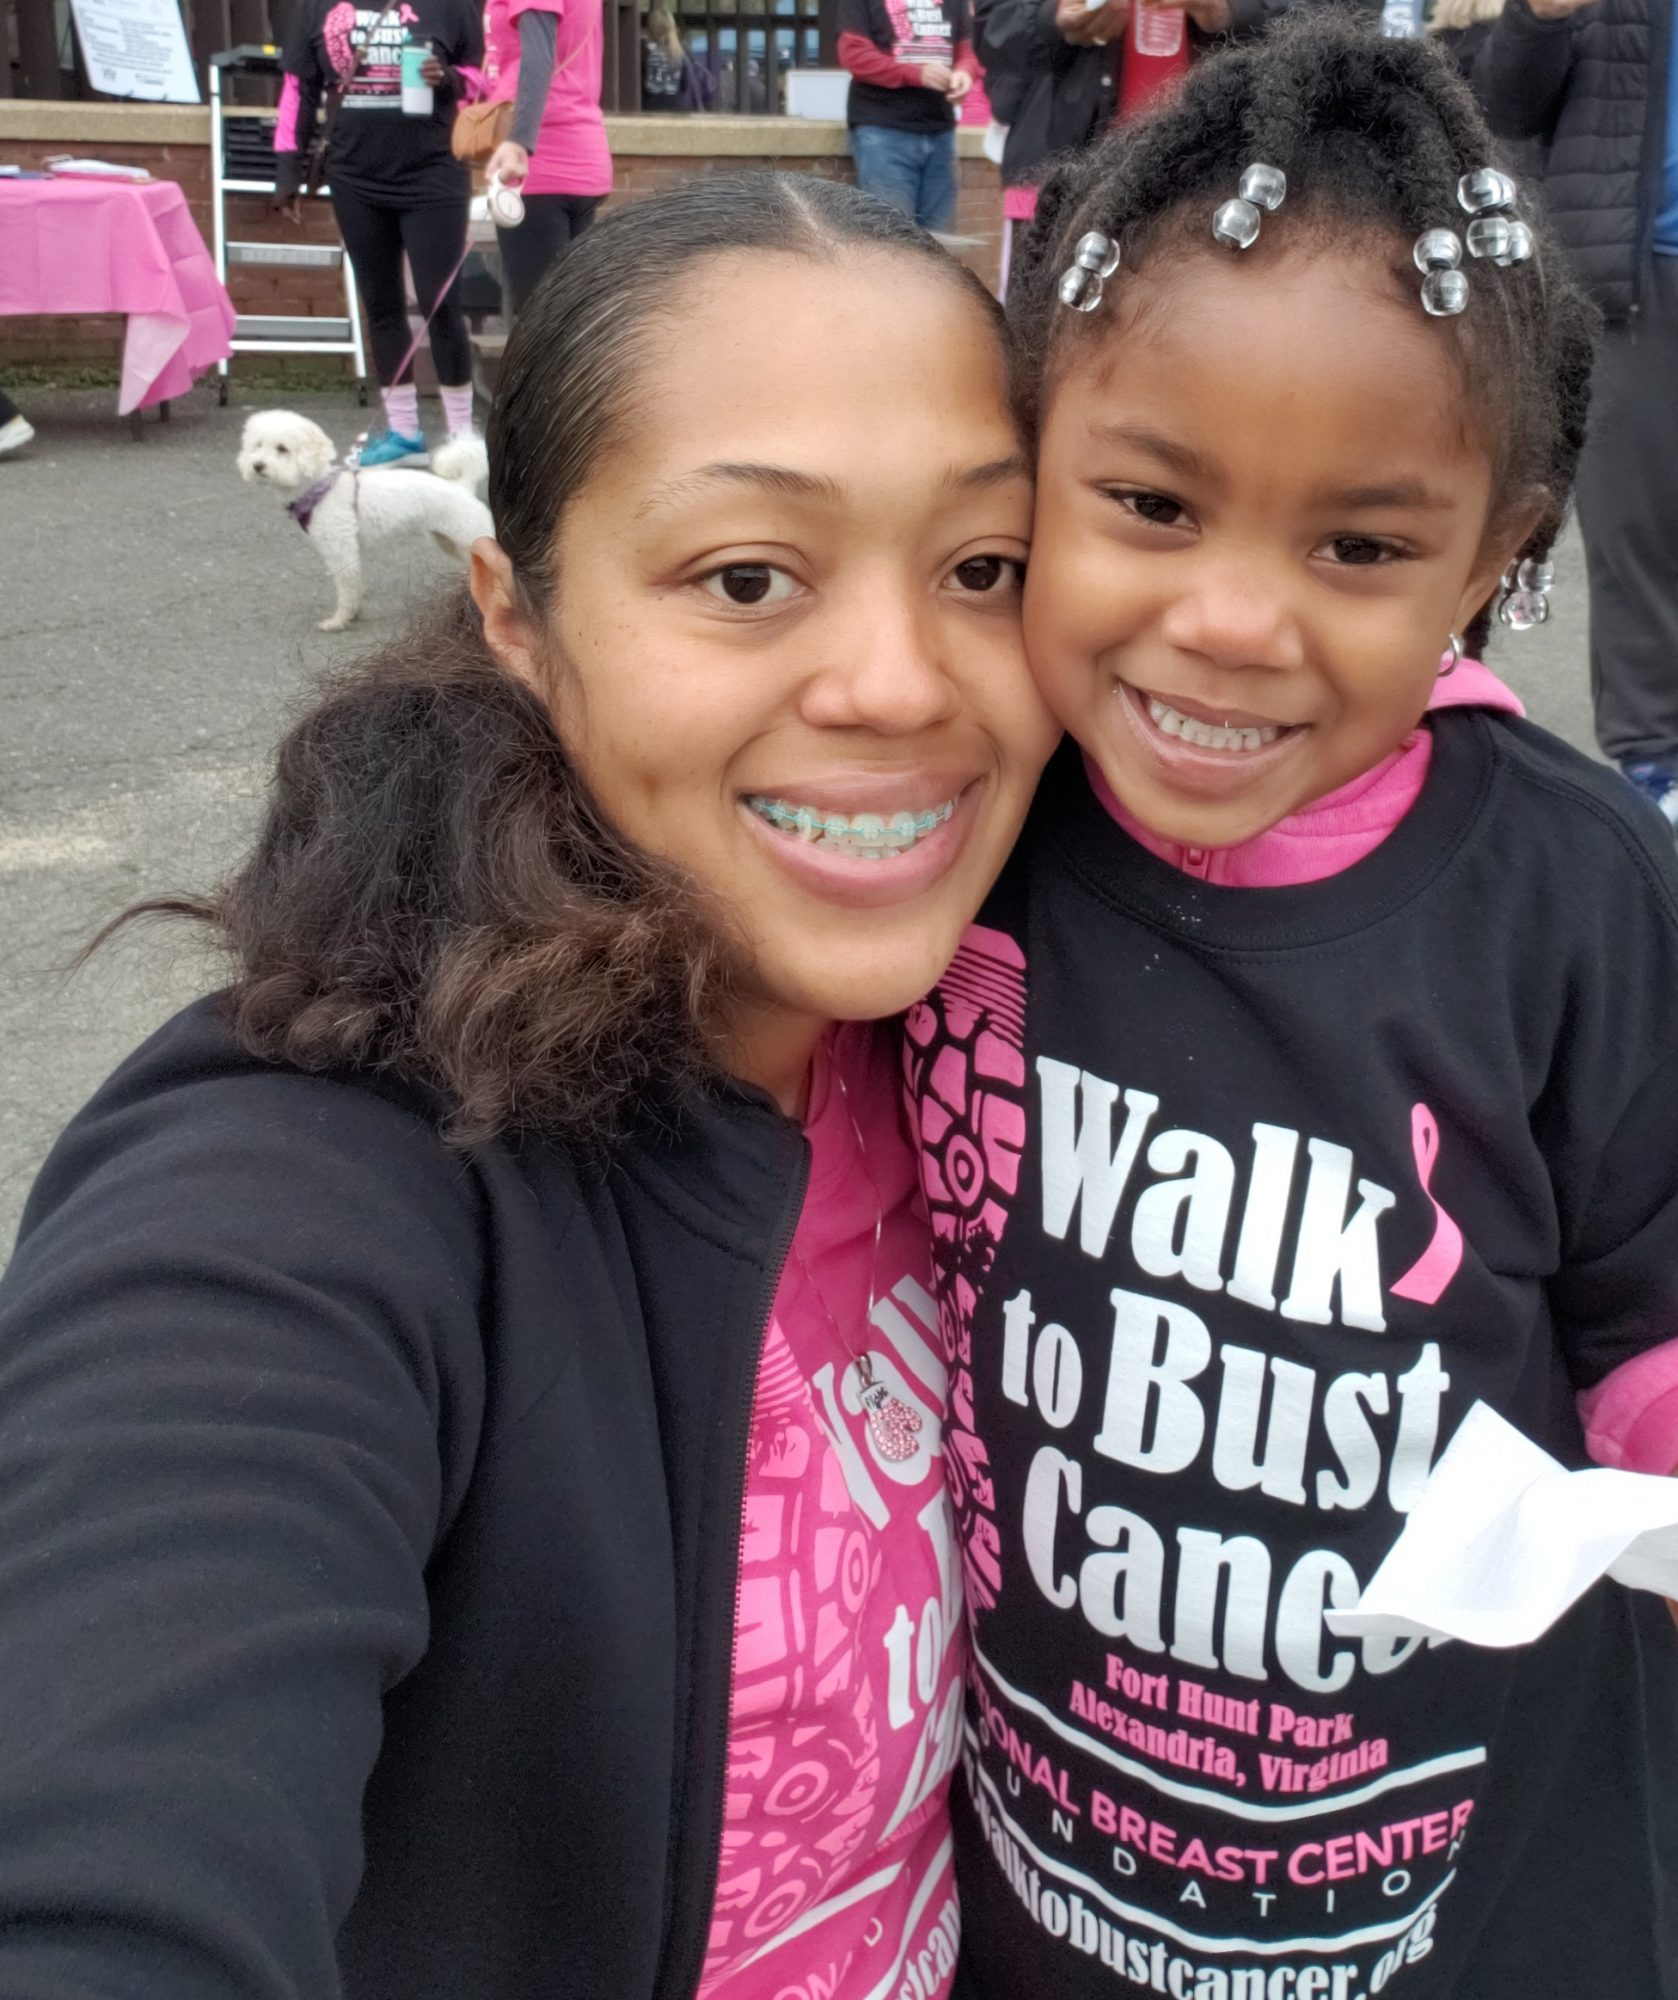 real-woman-breast-cancer-march